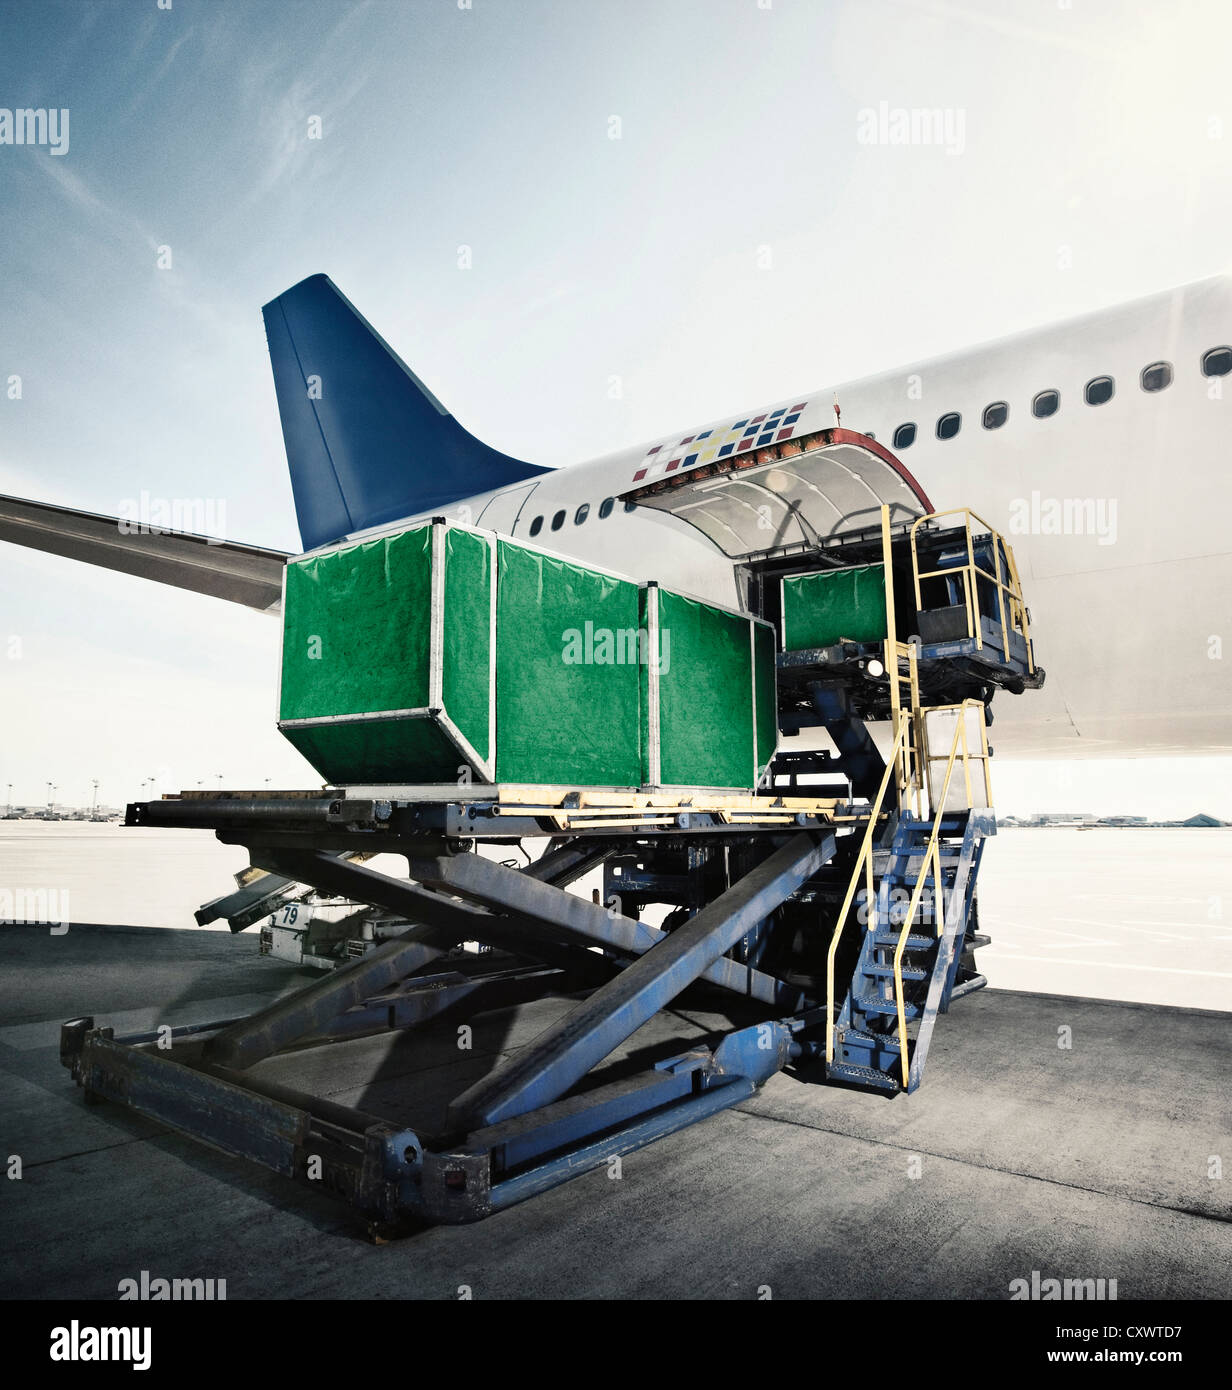 Green boxes loading into airplane - Stock Image